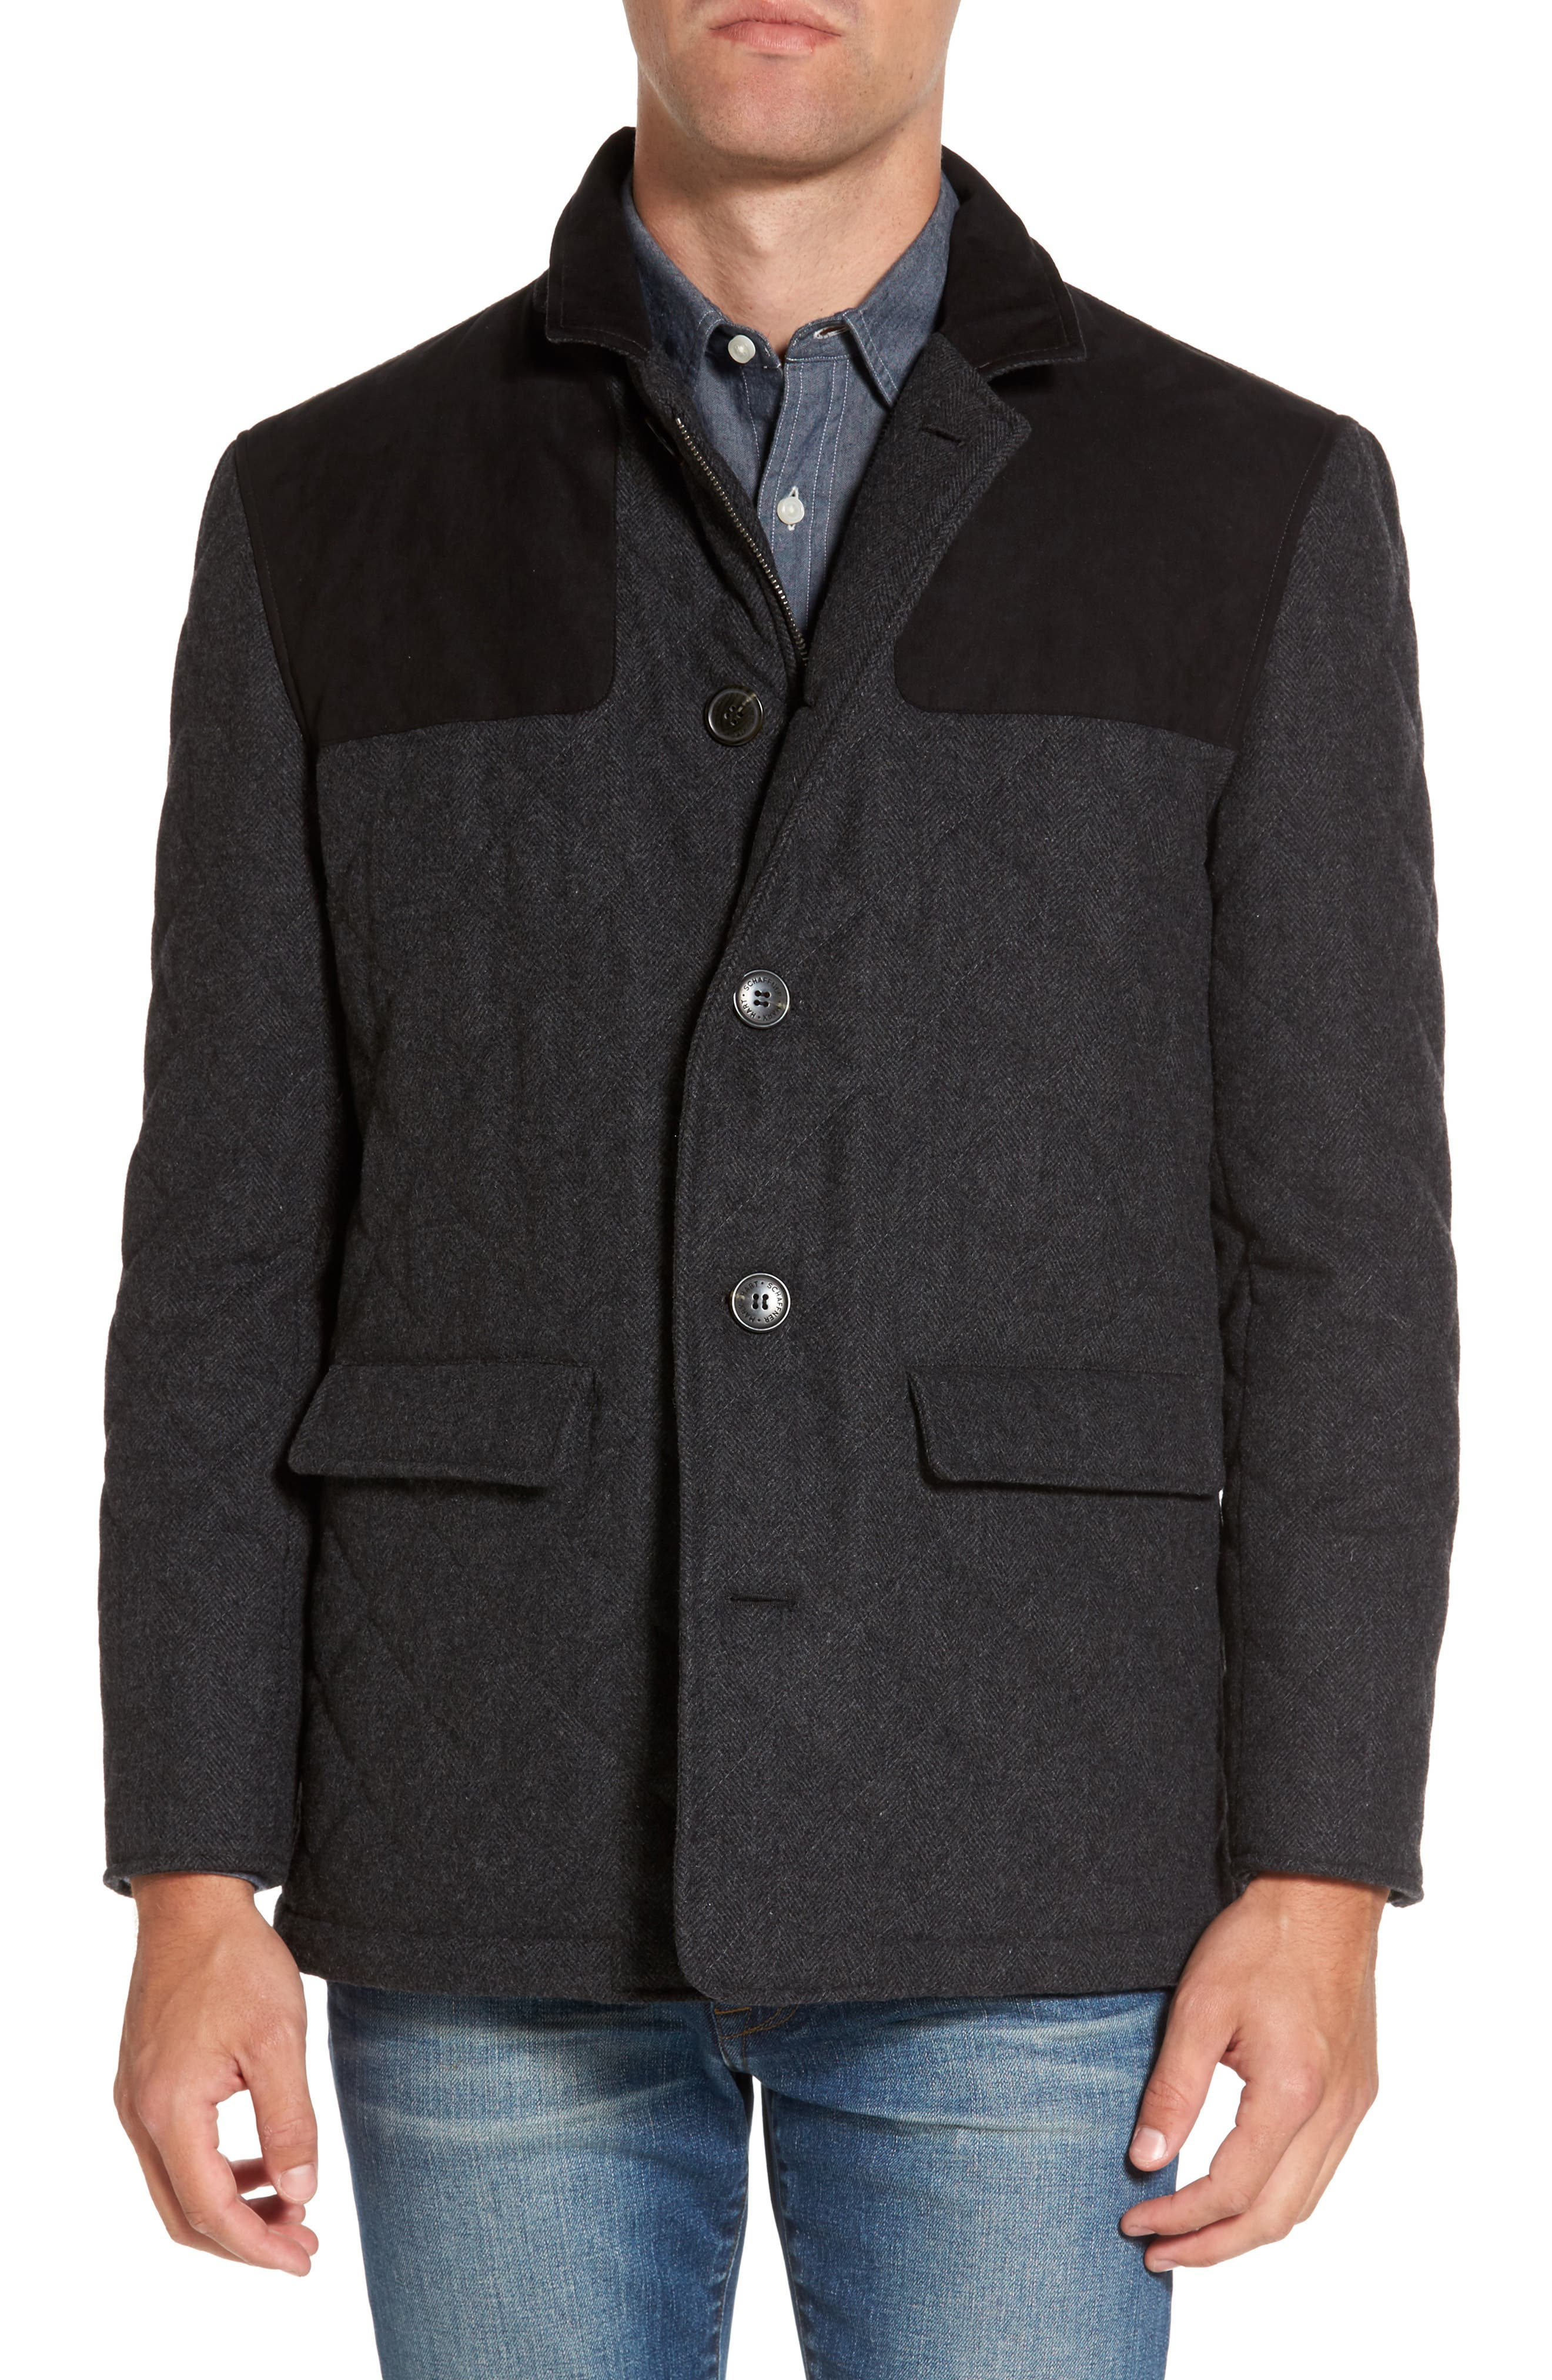 'Shooter' Wool Blend Quilted Jacket,                             Alternate thumbnail 4, color,                             024